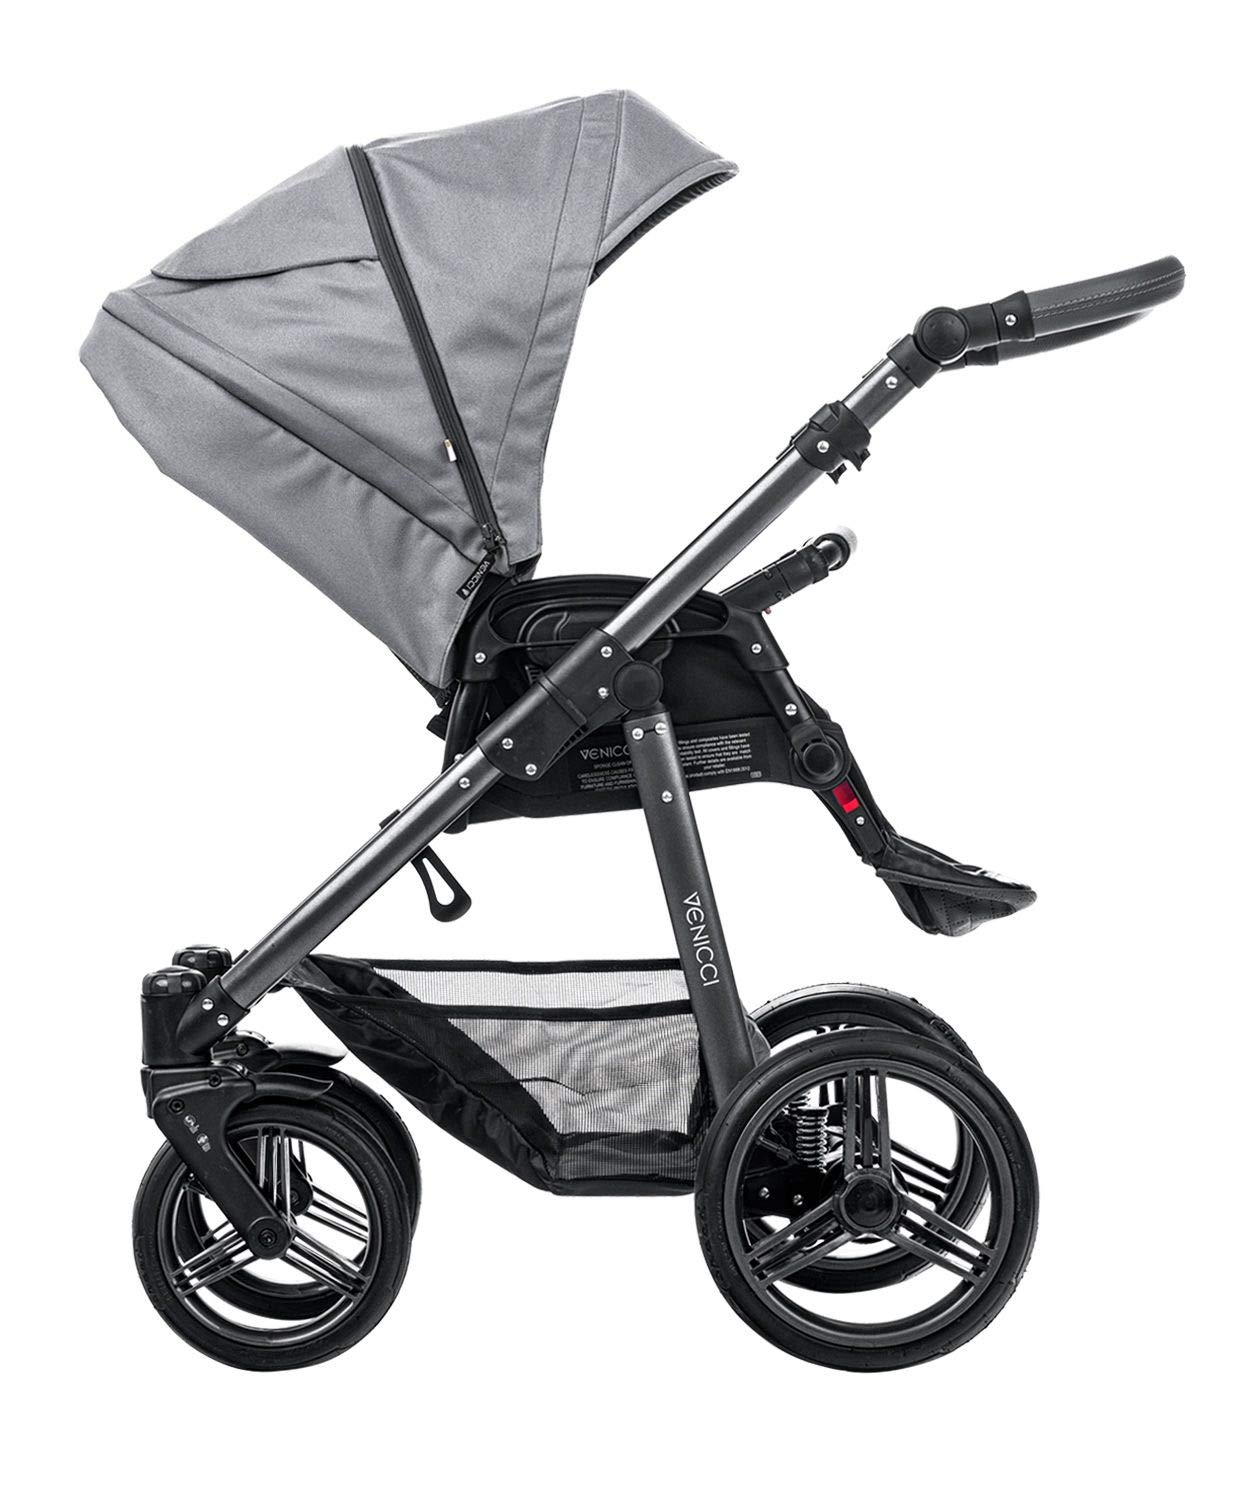 Venicci Carbo Lux 3-in-1 Travel System - Natural Grey - with Carrycot + Car Seat + Changing Bag + Apron + Raincover + Mosquito Net + 5-Point Harness and UV 50+ Fabric + Car Seat Adapters + Cup Holder Venicci 3 in 1 Travel System with included Group 0+ Car Seat 5-point harness to enhance the safety of your child Comfortable seat for baby with additional liners 3